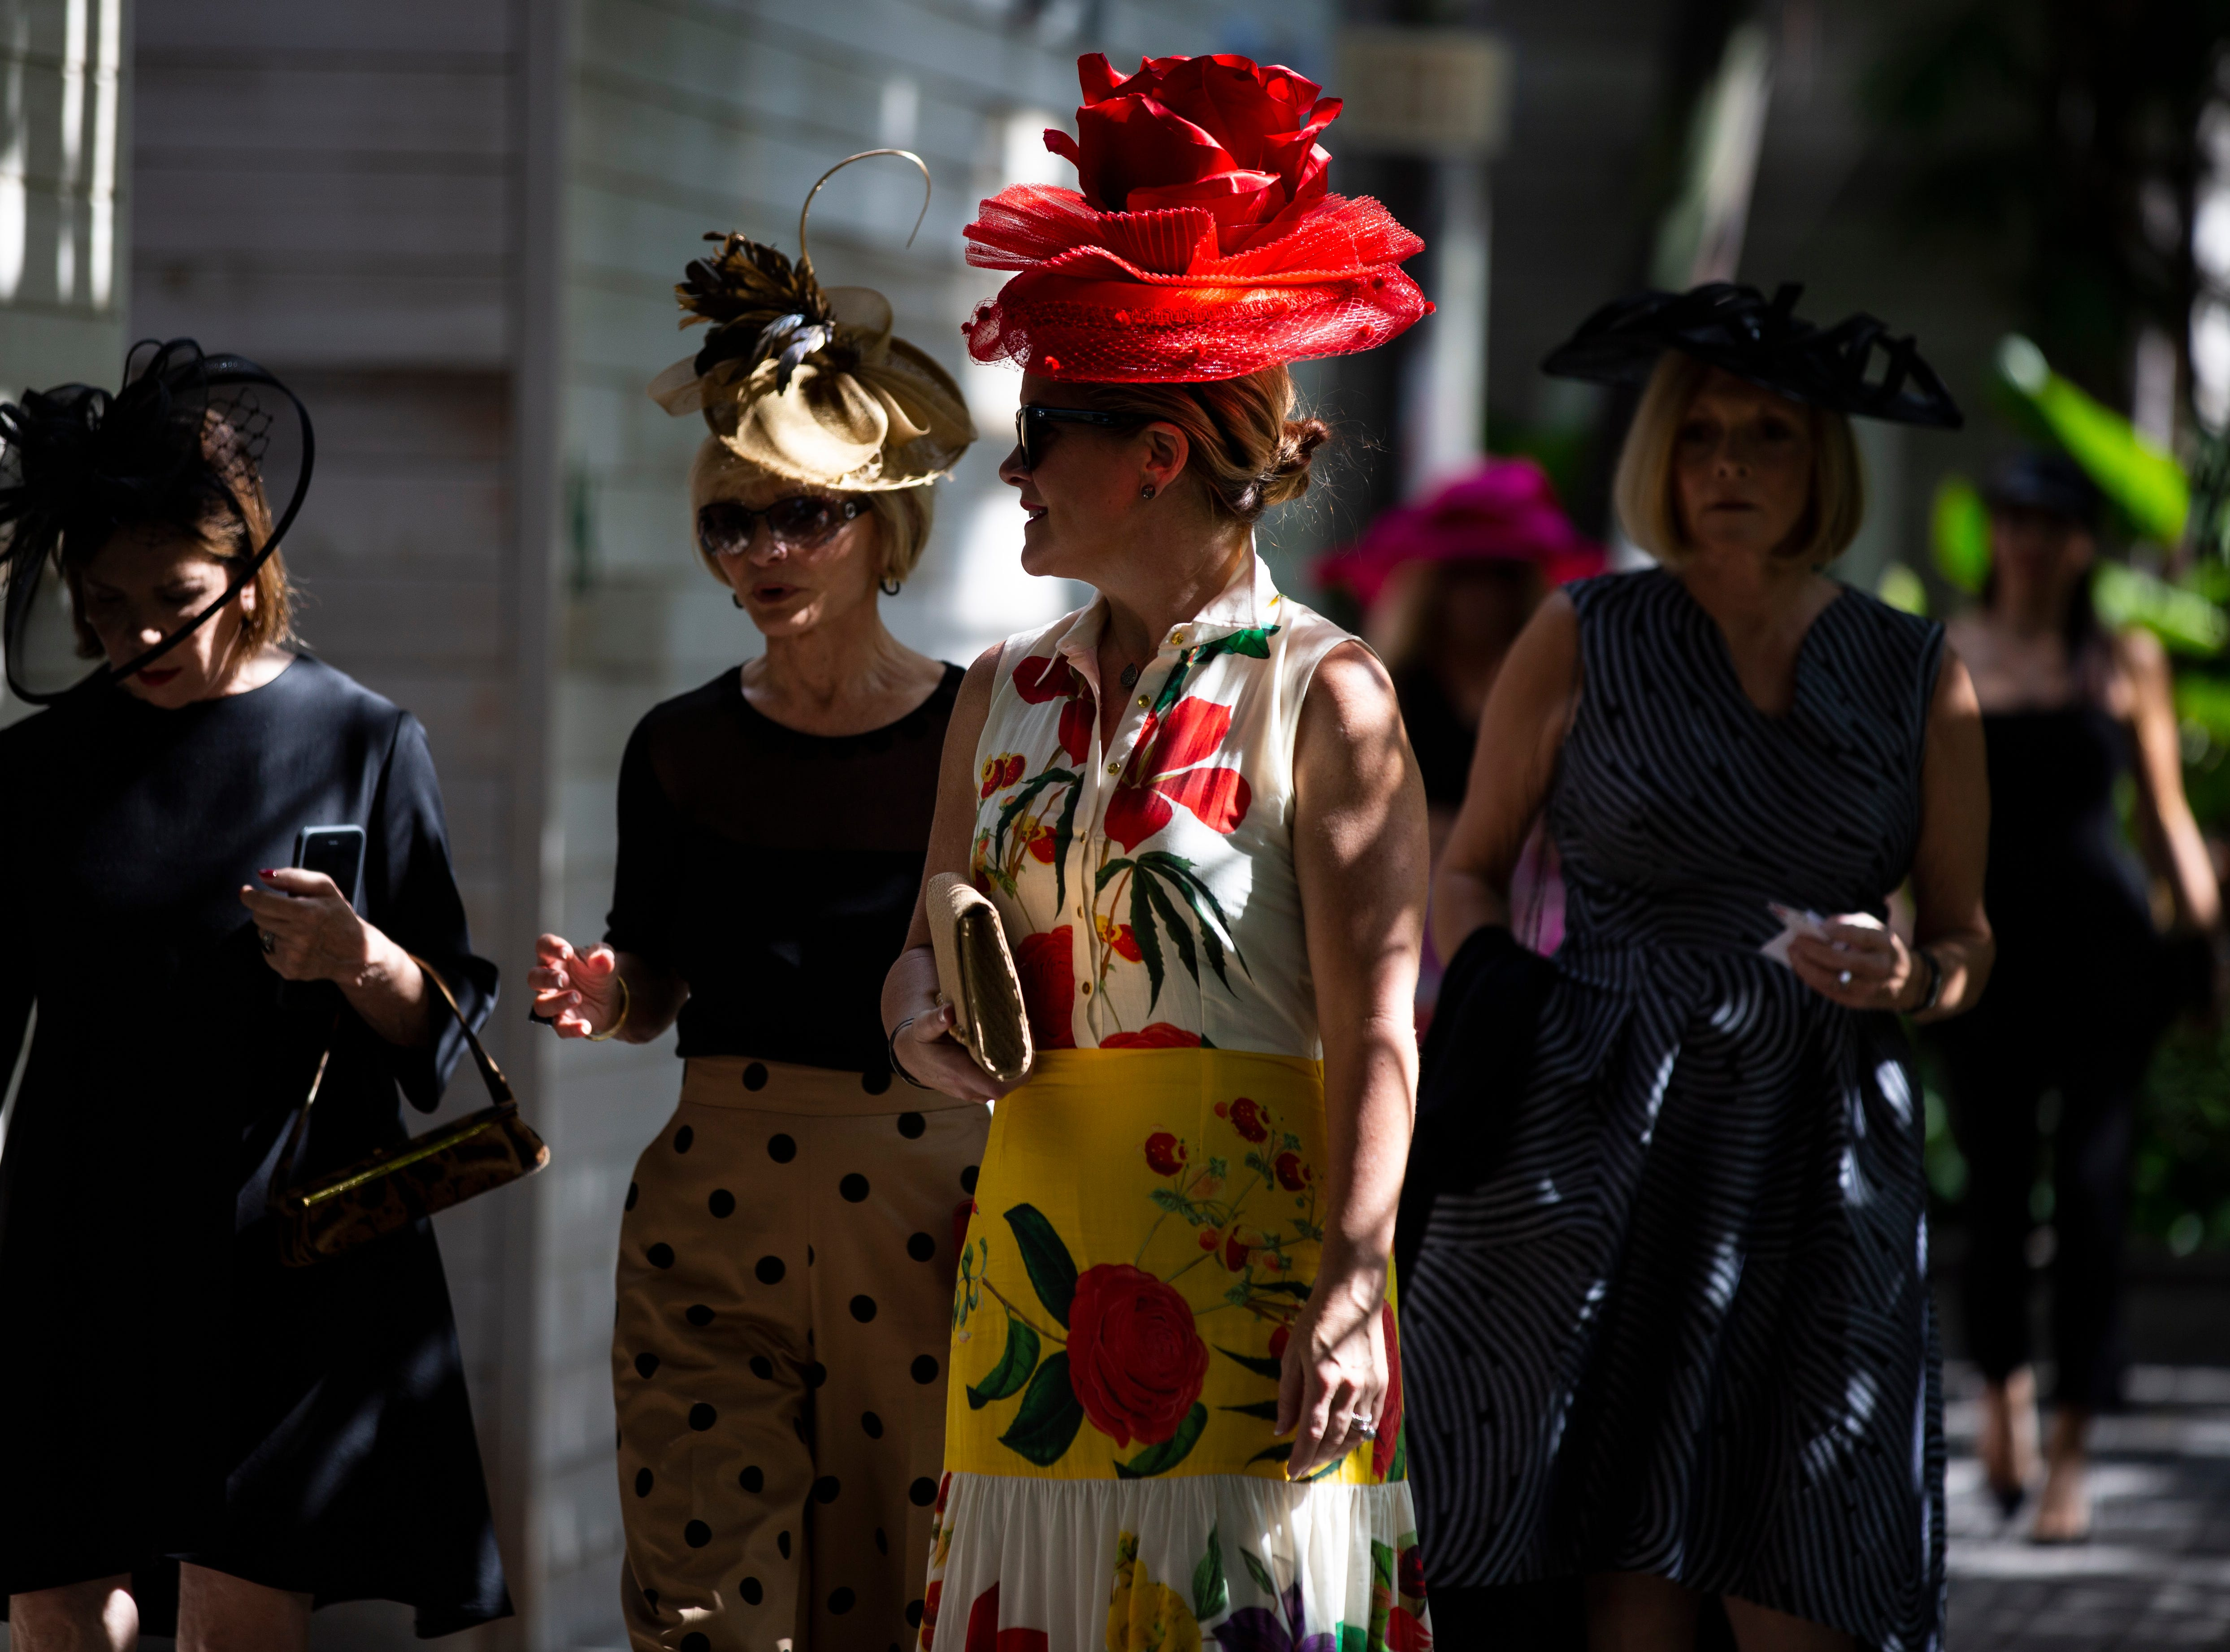 Guests arrive at the 15th annual Hats in Garden fundraiser at Naples Botanical Garden on Nov. 7, 2018. The fundraiser marked the kickoff to the year's social season.  Since it's inception in 2004, the event has been supported by the Sustaining Leadership Council, a group of women who dedicate their time and charitable support to the Botanical Garden's special events and donor programs.